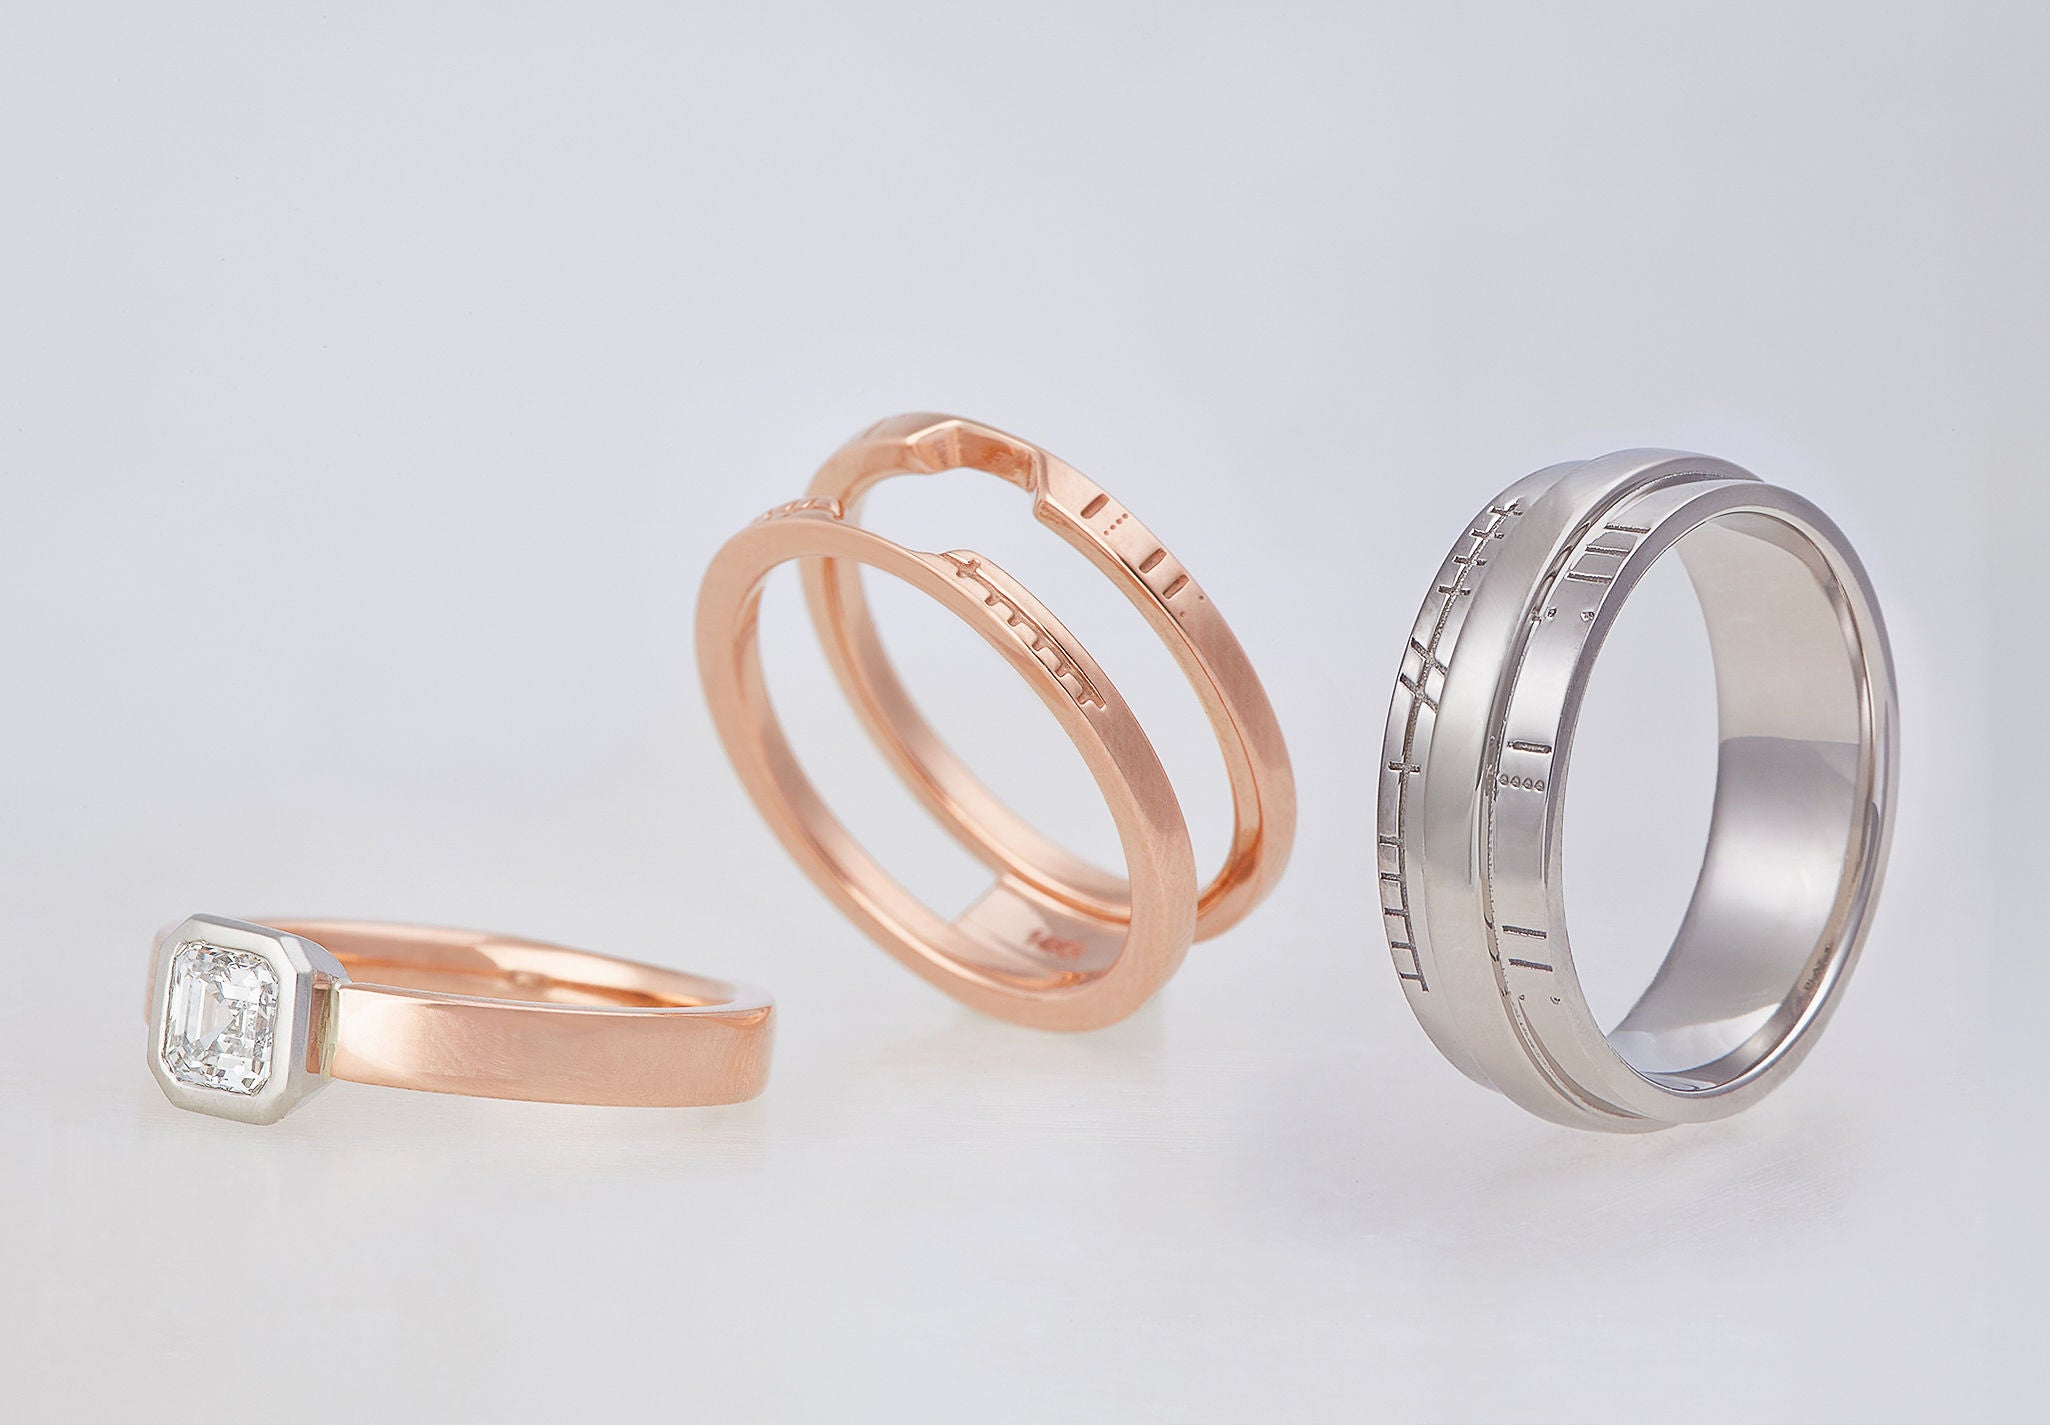 Wedding bands with Mayan numeric symbols and Ogham engraving